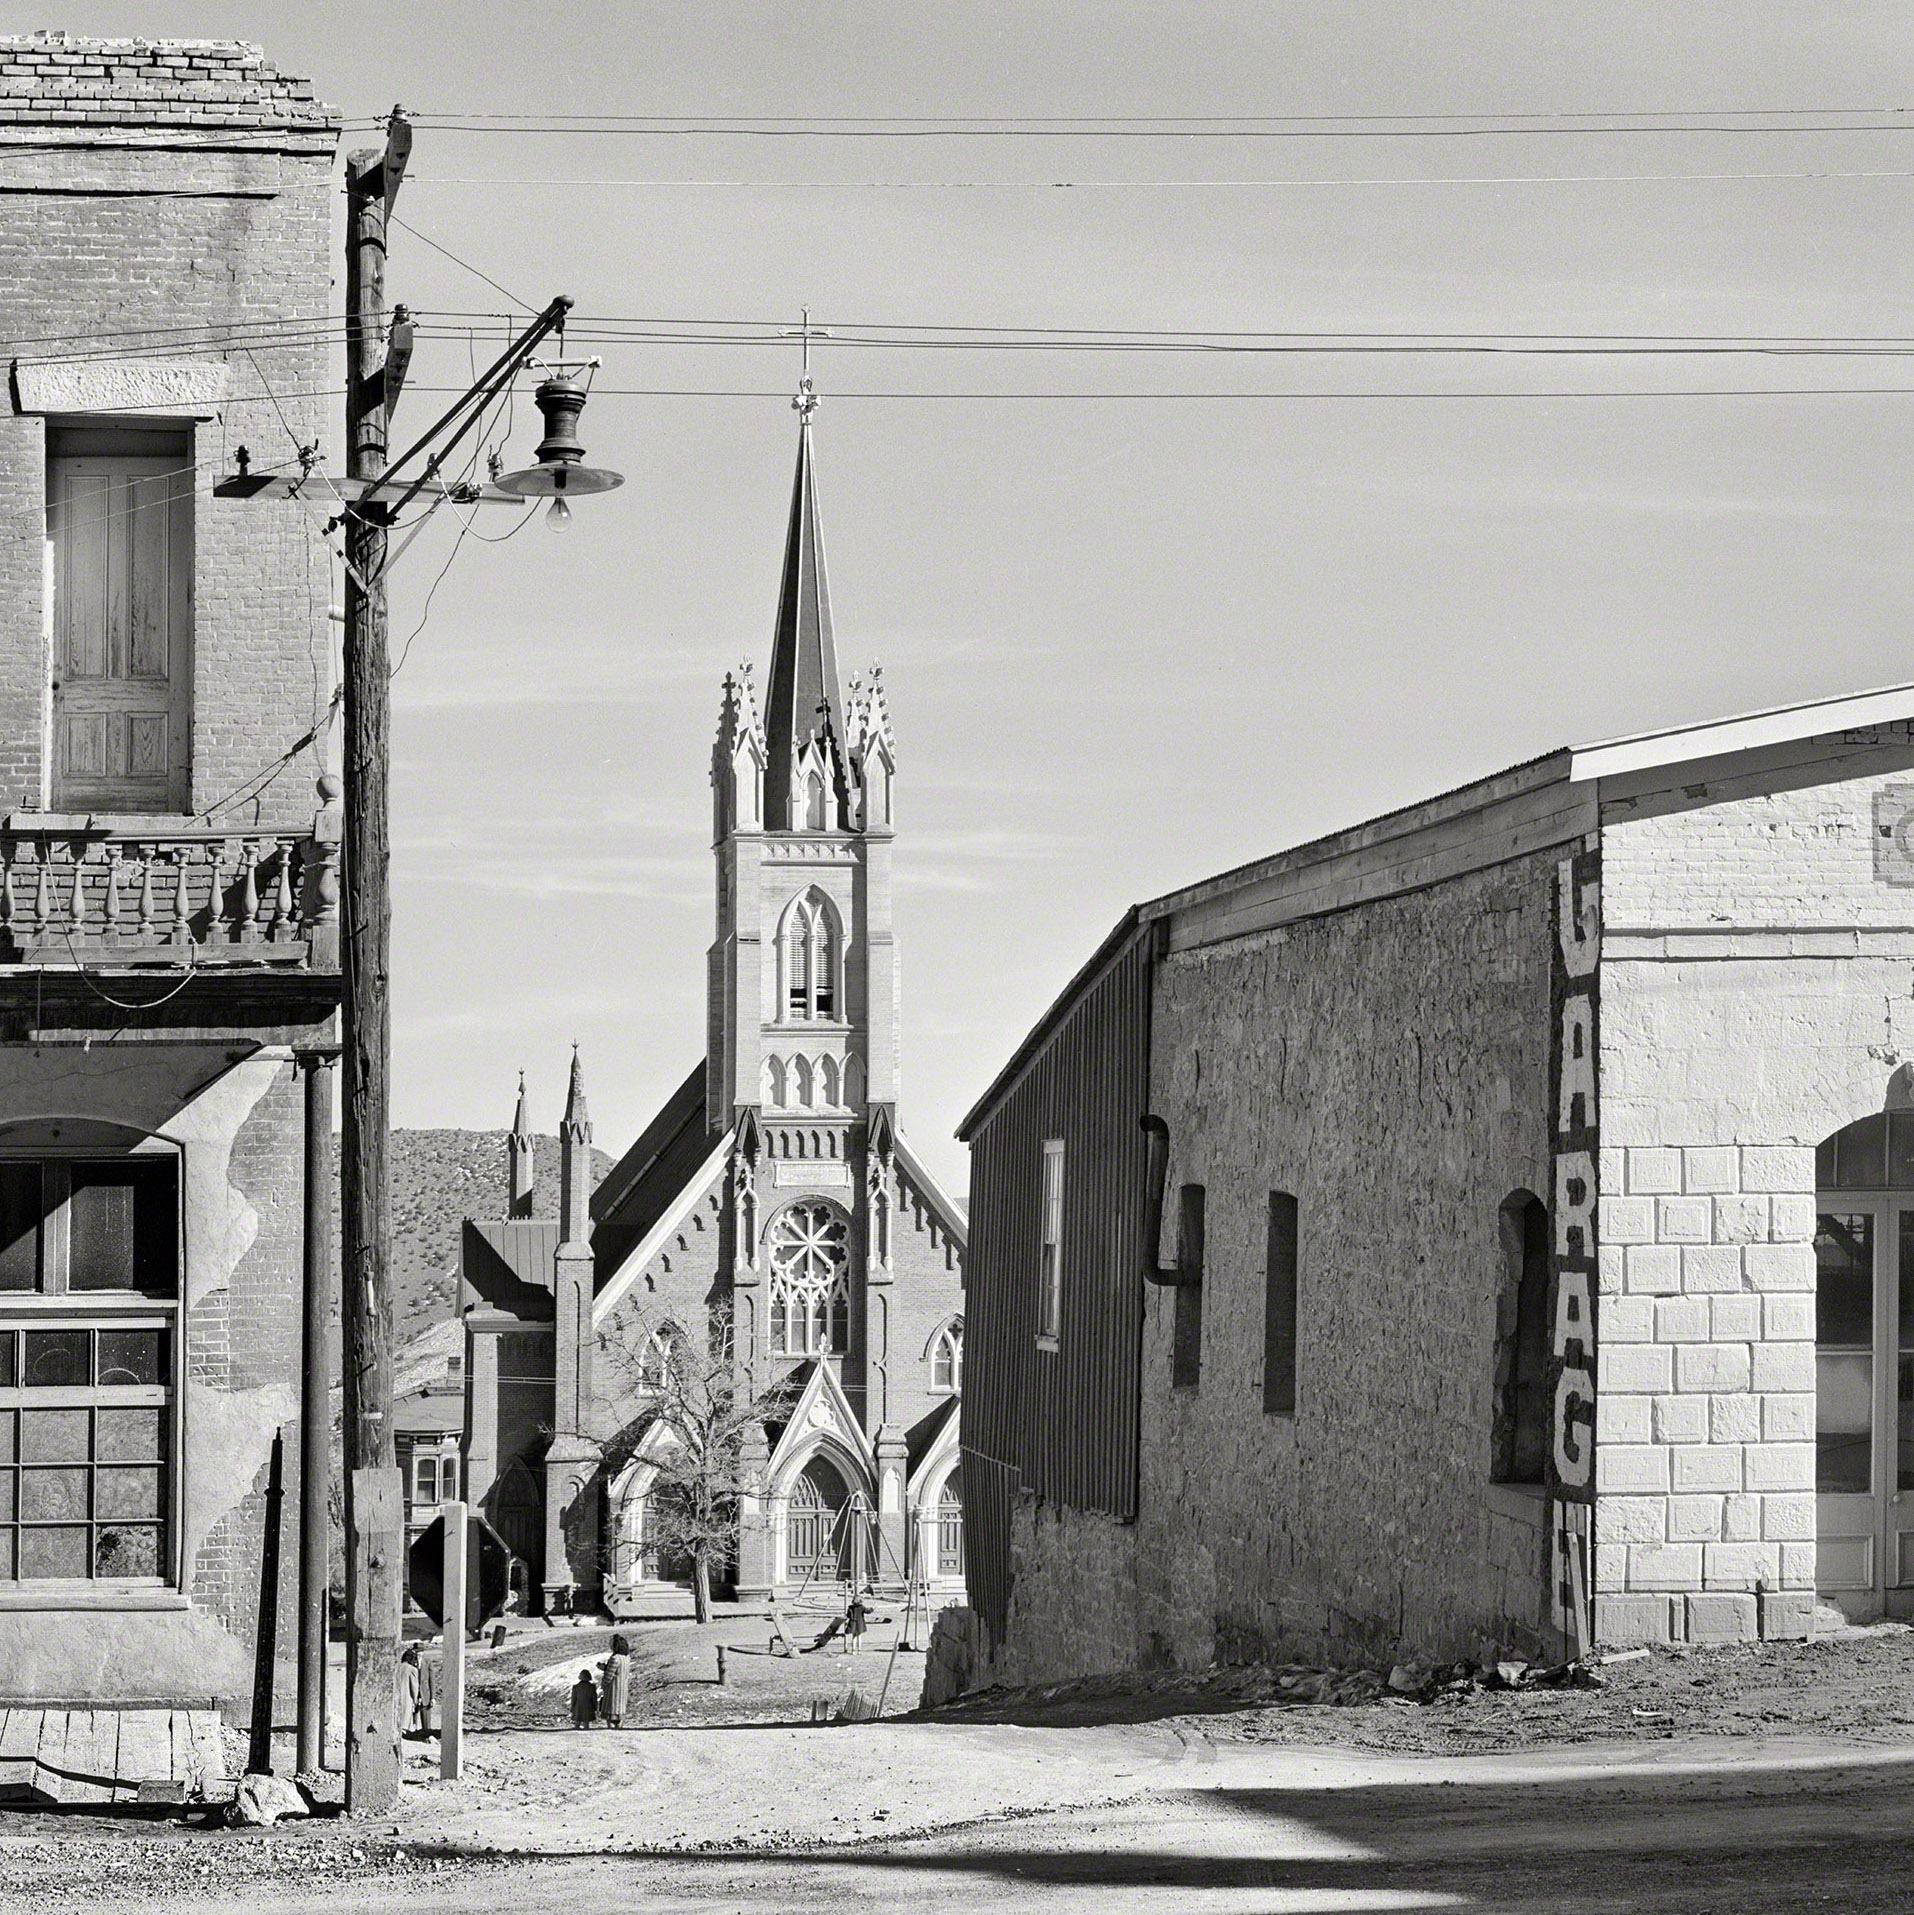 Burgdorff's depiction of St. Mary's appears to have changed relatively little in this March 1940 photograph from the U.S. Farm Security Administration Photograph Collection (Library of Congress) - Arthur Rothstein (1915-1985) photographer.